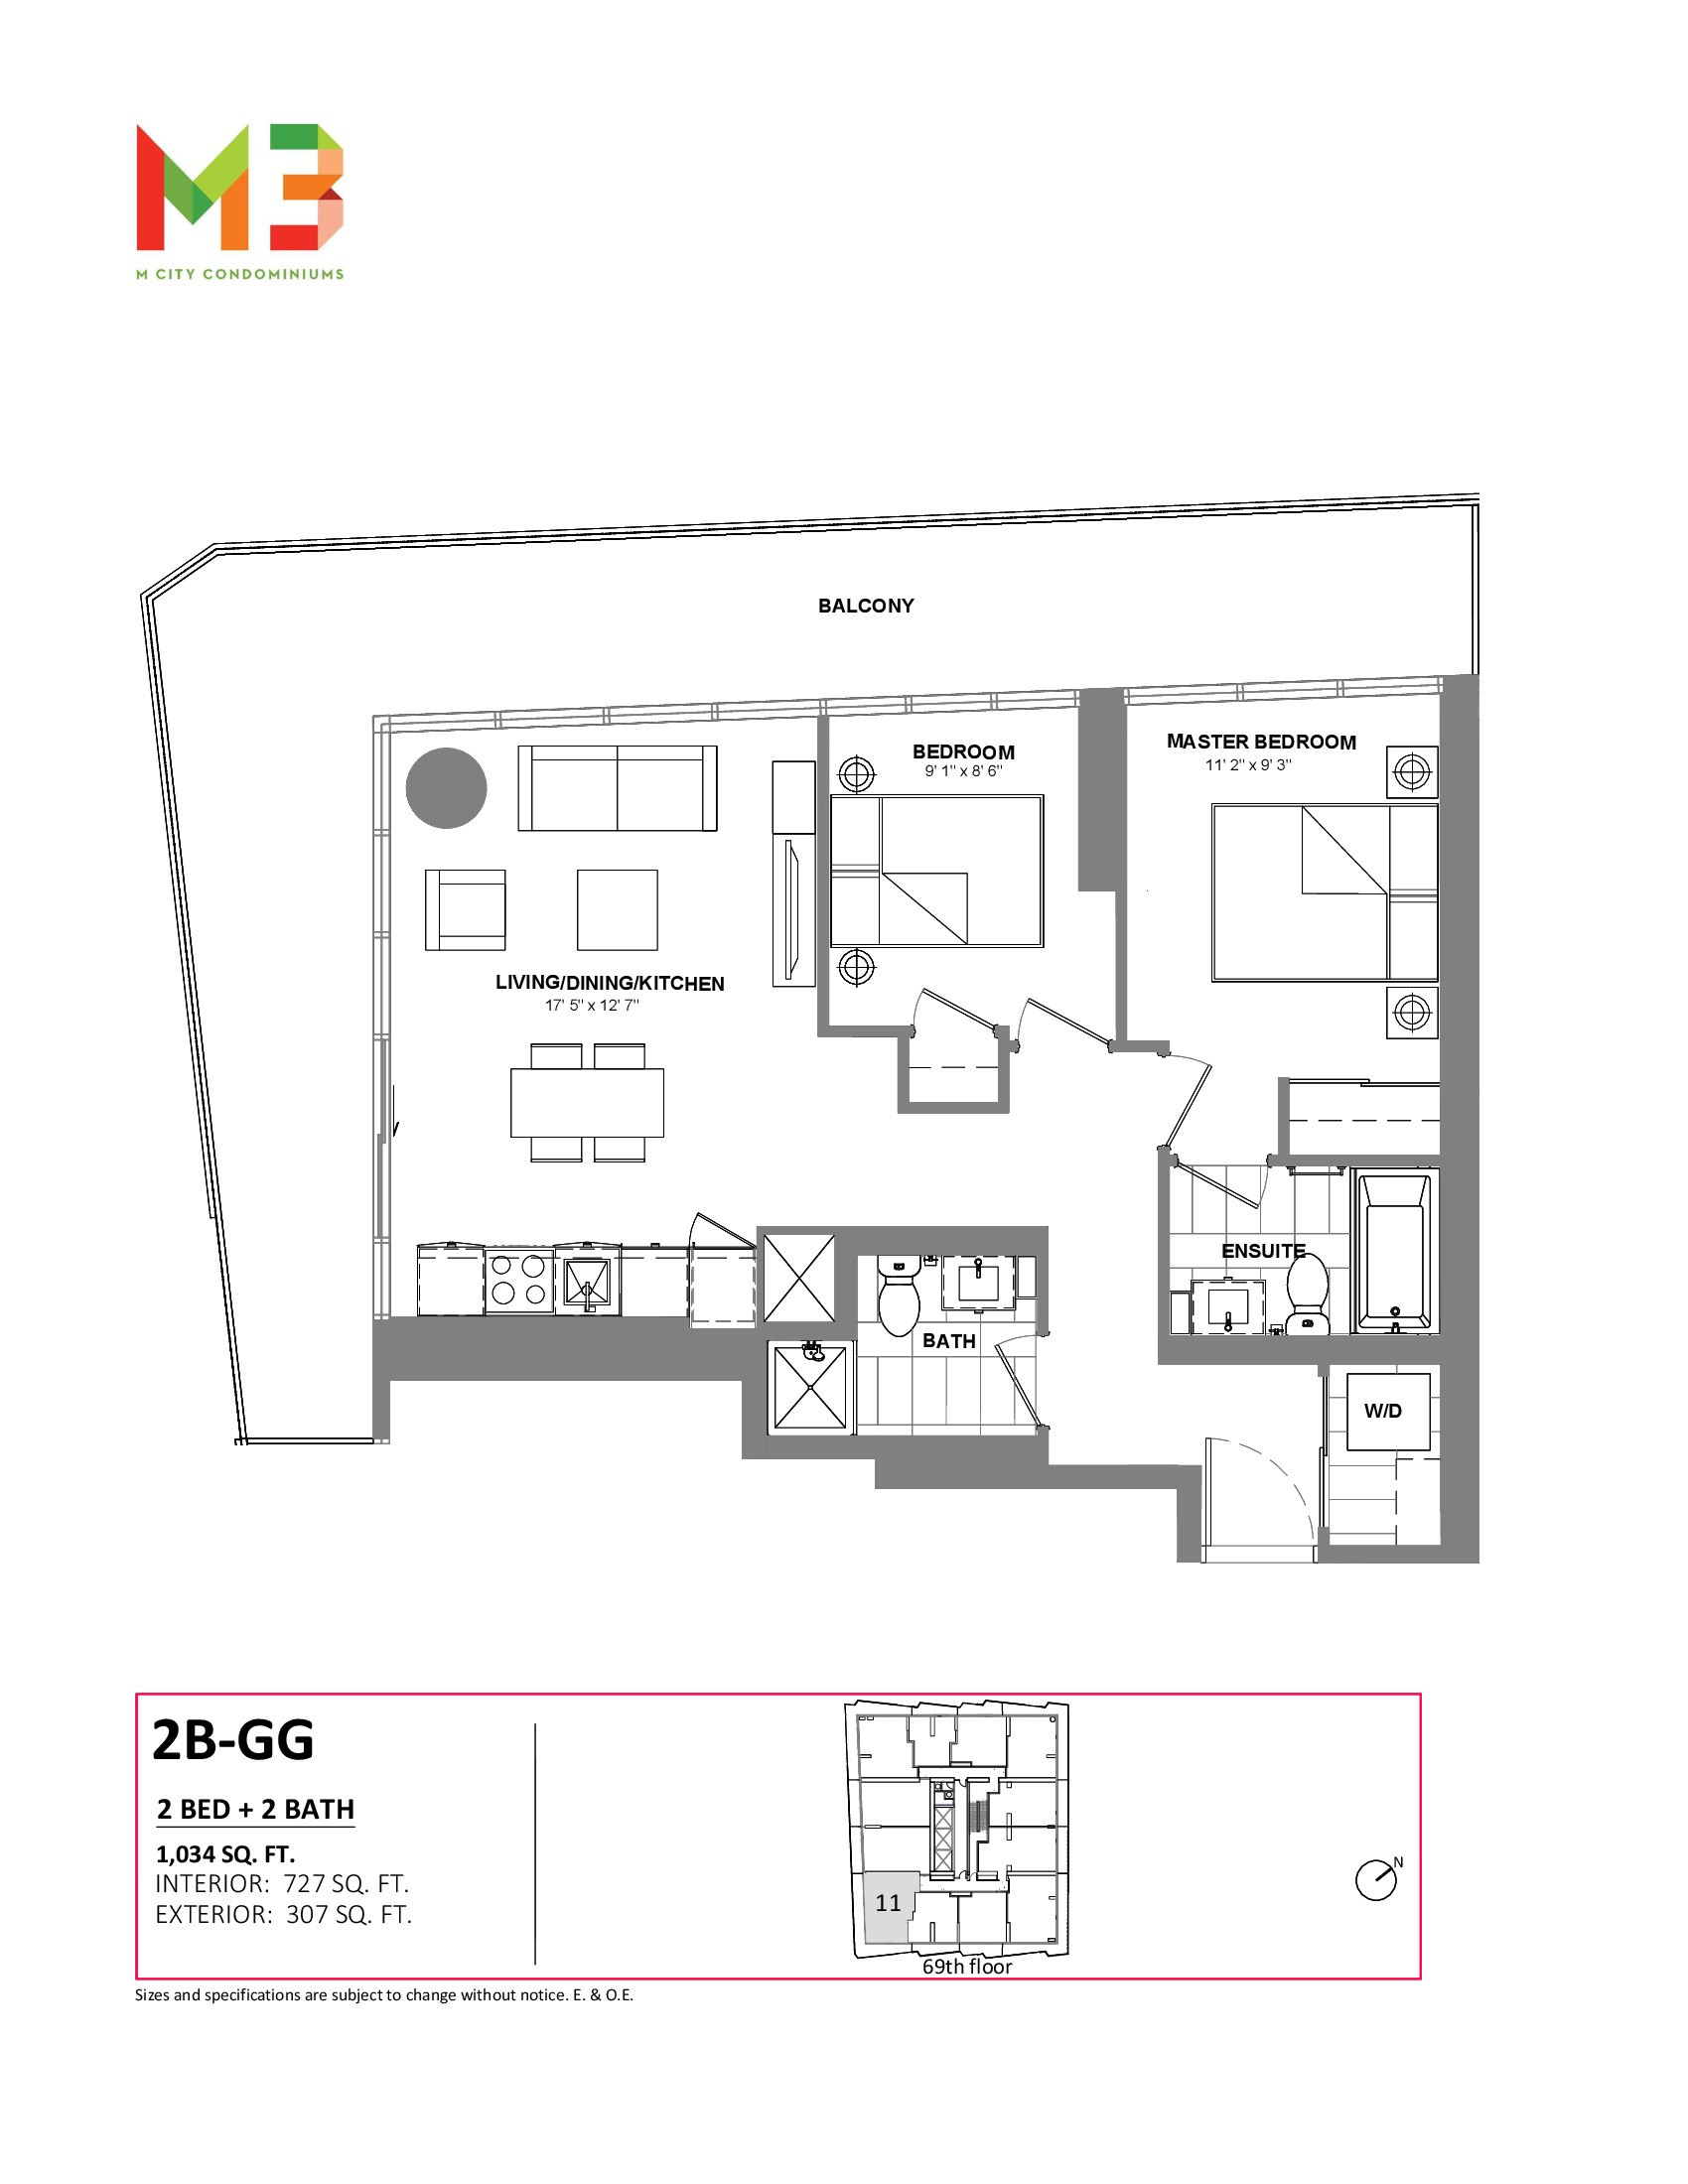 2B-GG Floor Plan at M3 Condos - 727 sq.ft